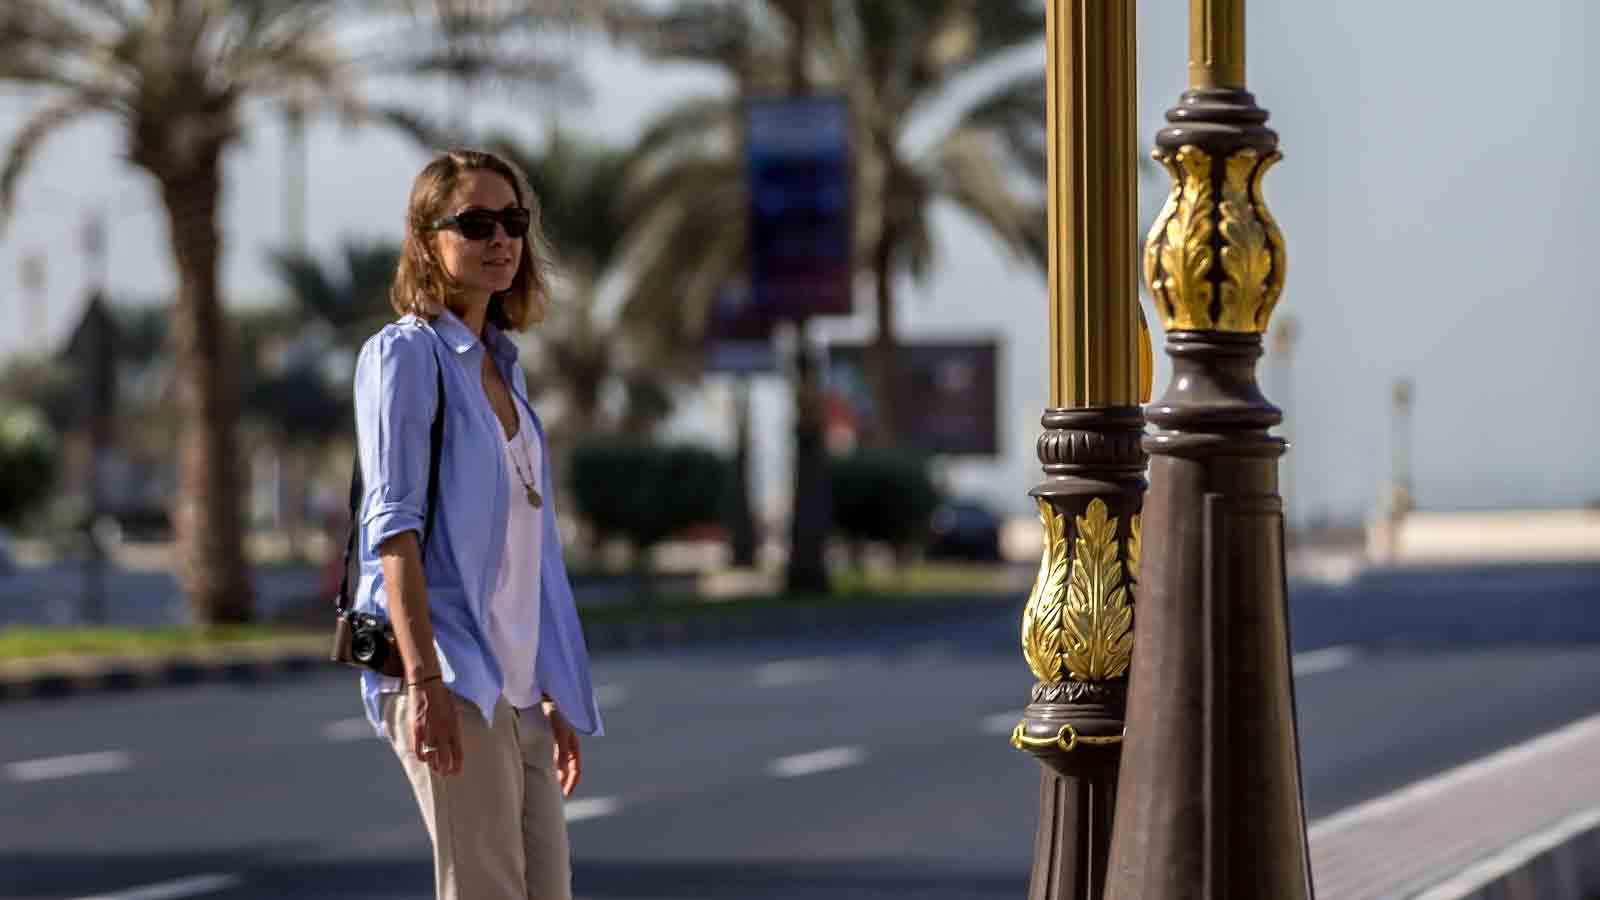 Woman on the streets of Ajman